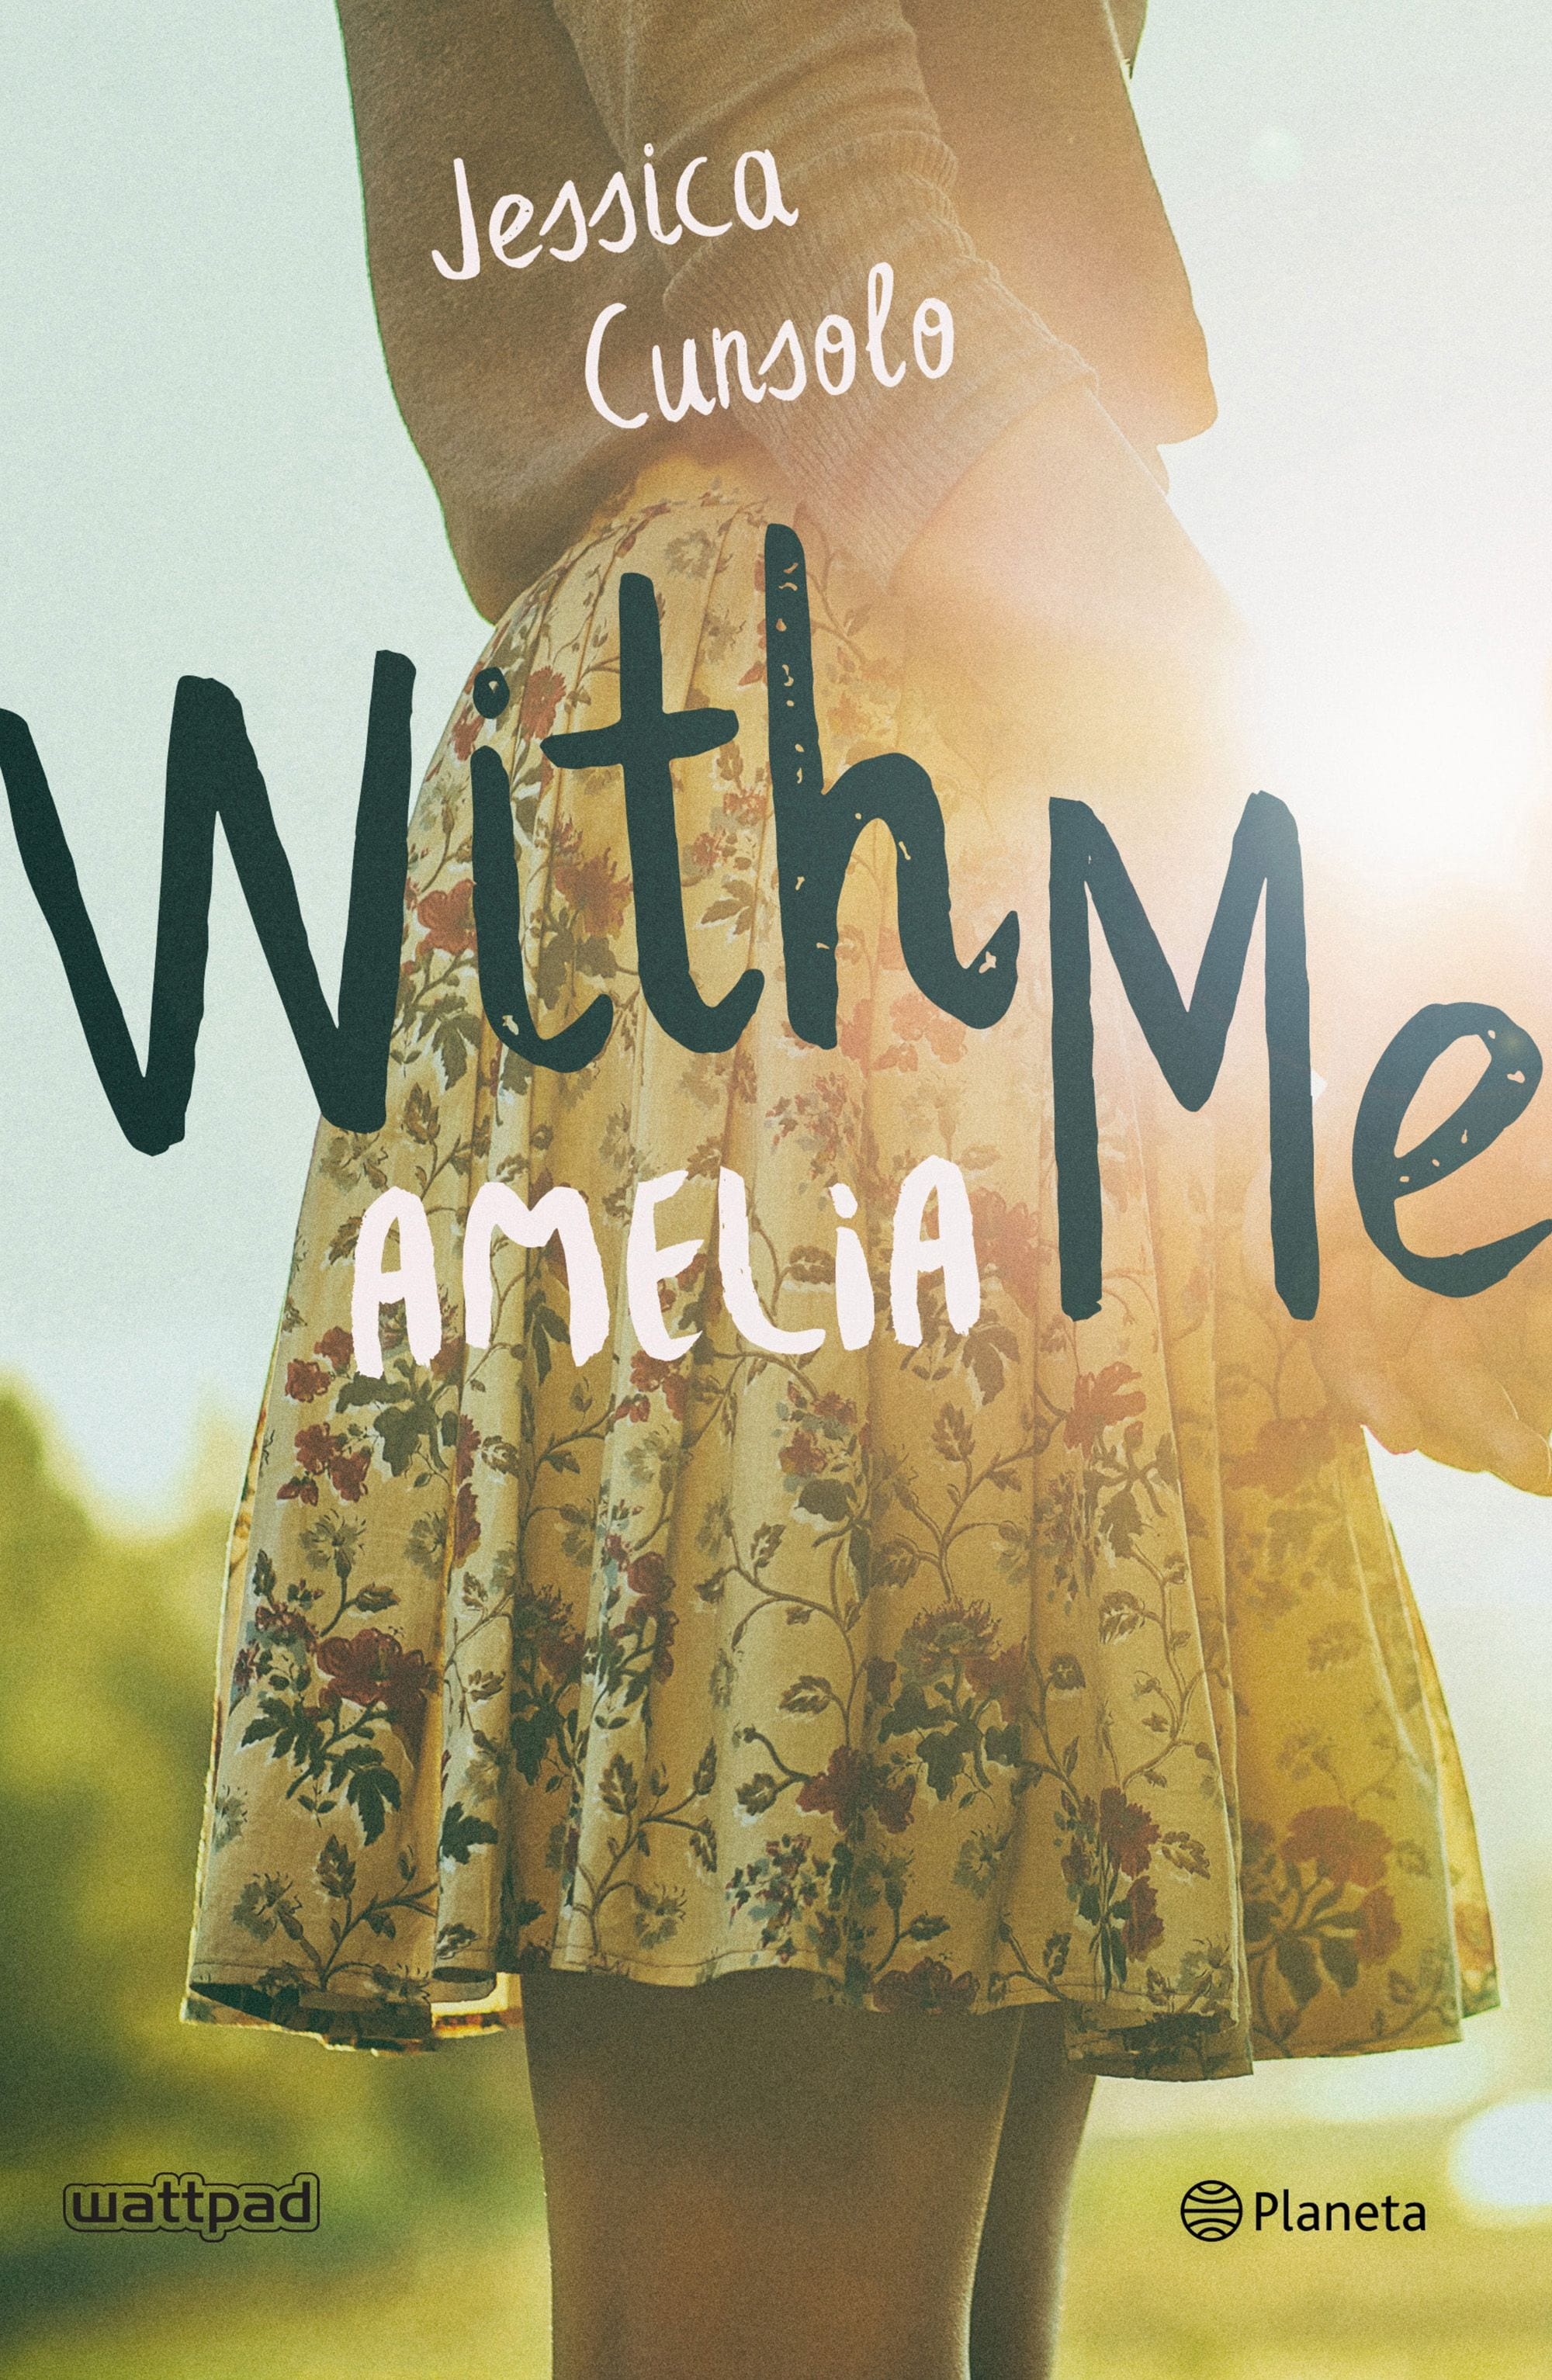 With me. Aiden, de Jessica Cunsolo - Reseña